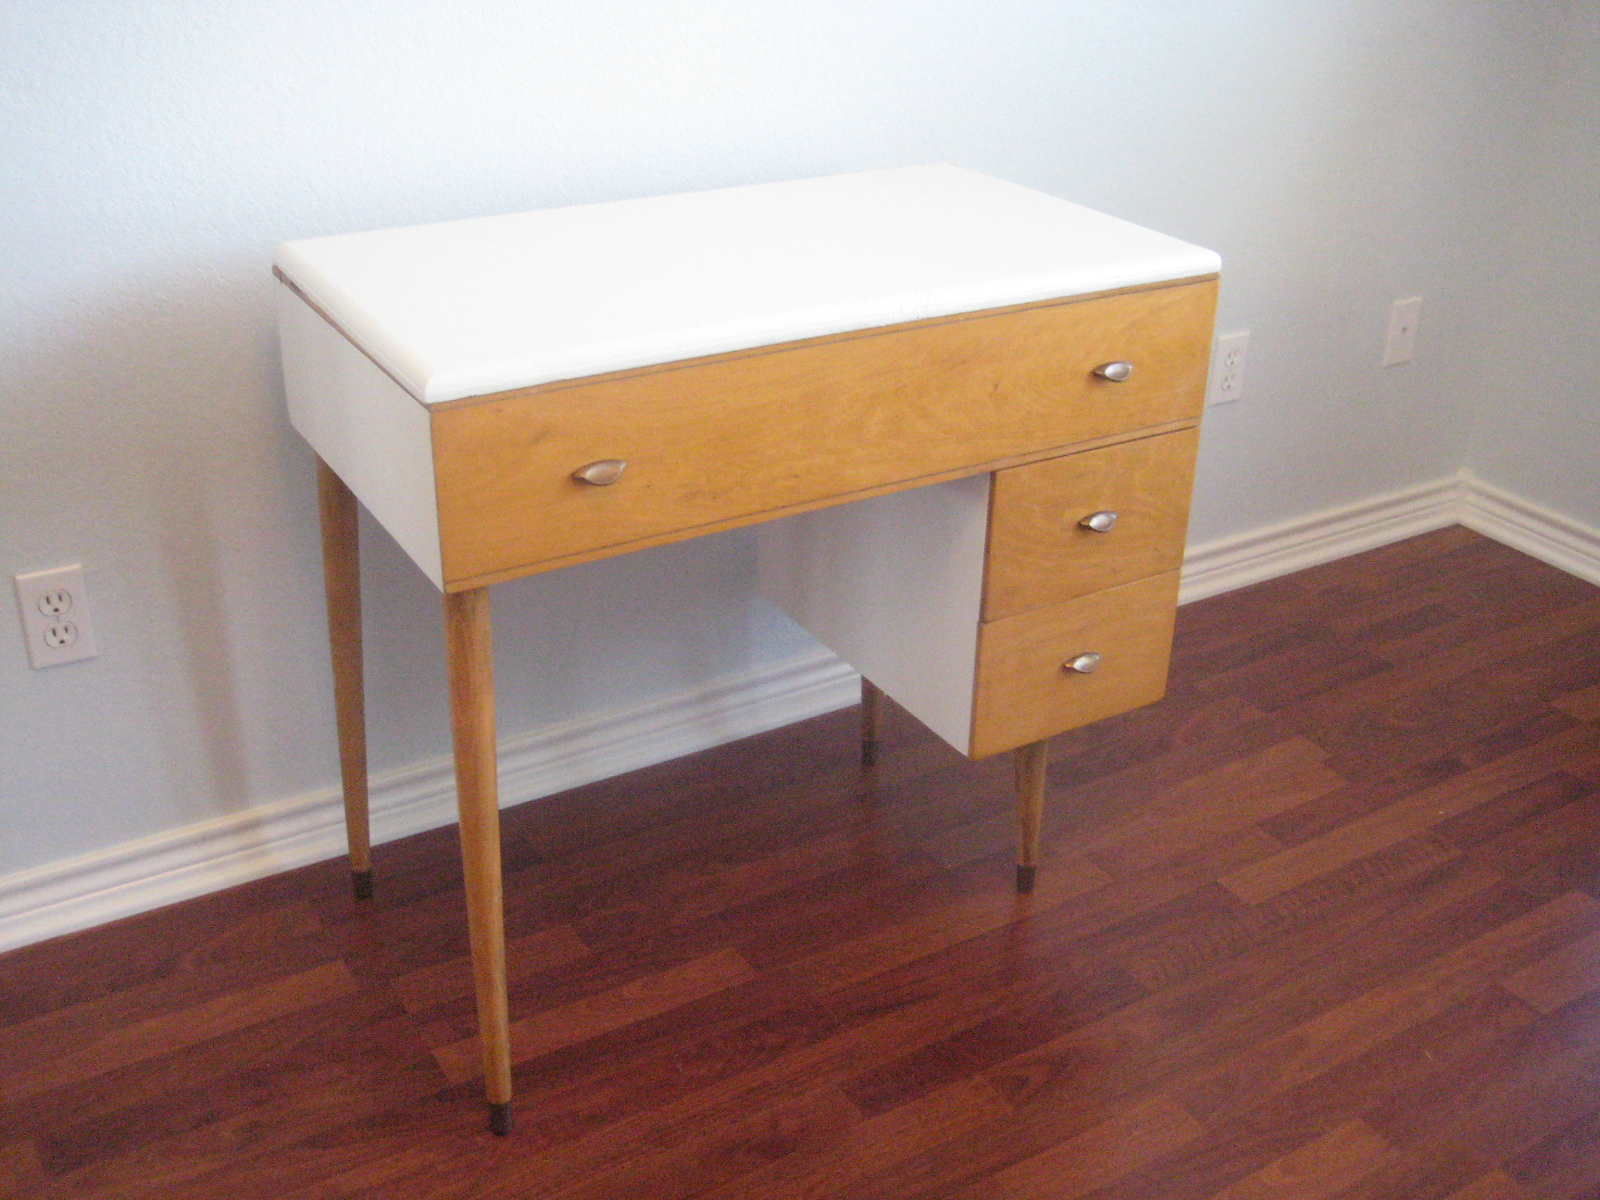 Adventures In Creating: Mid Century Sewing Table Turned Modern Desk